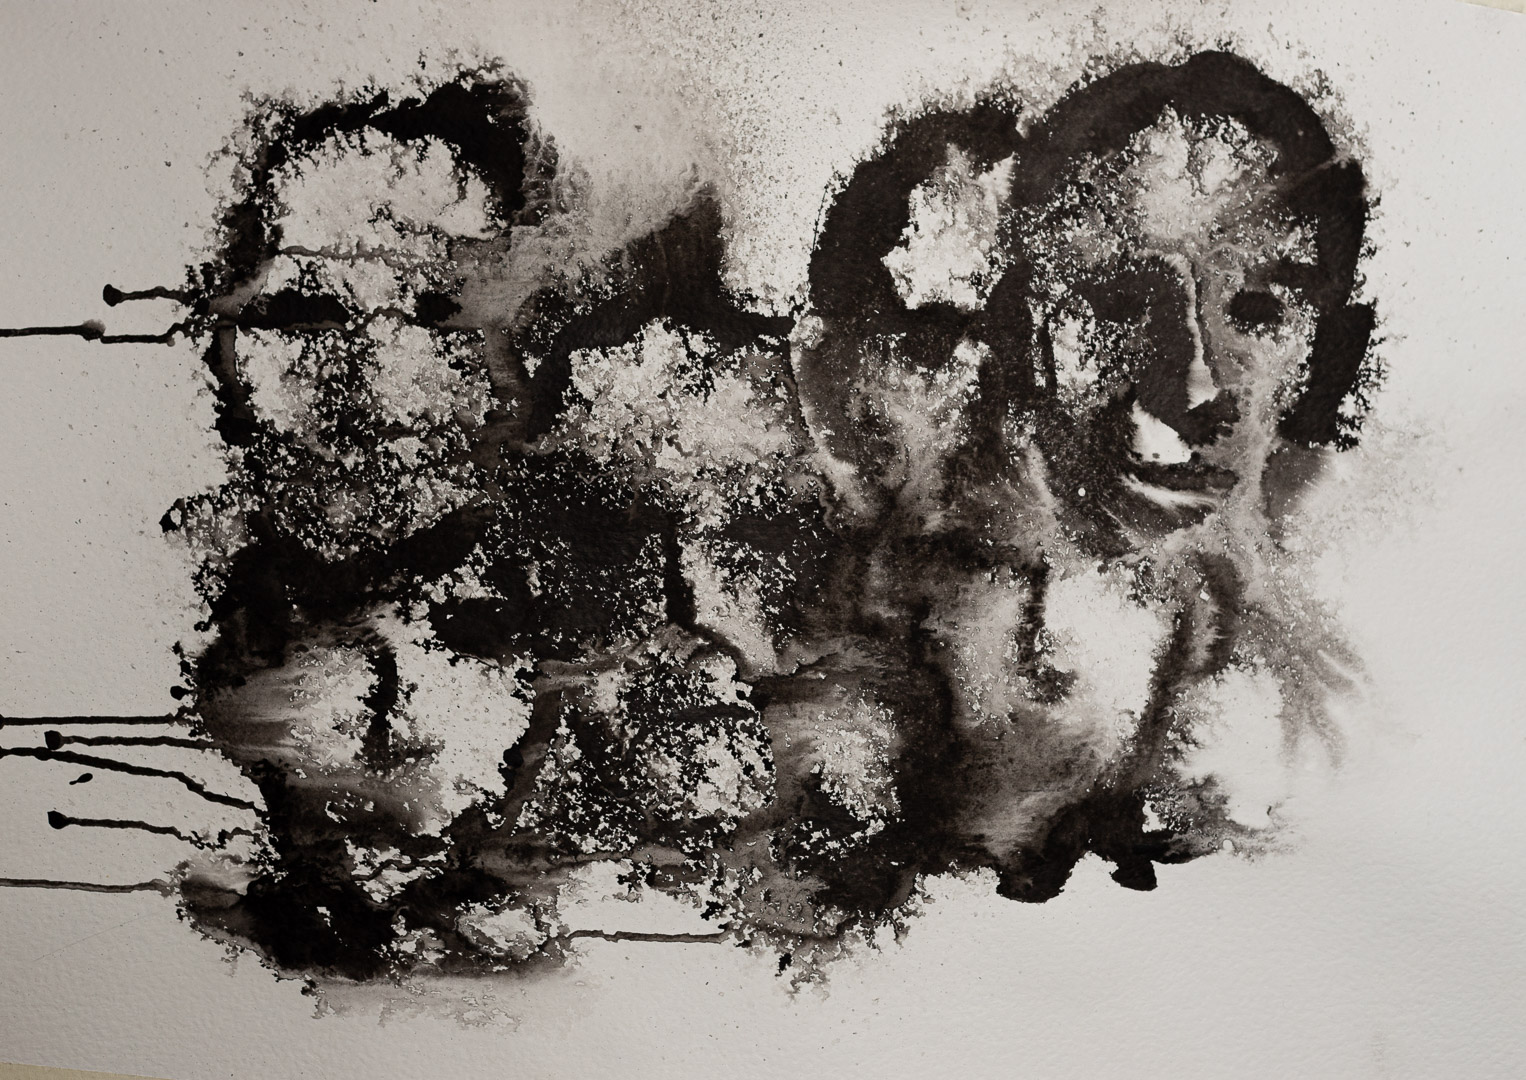 (Title Withheld) ink on paper - Niko Skorpio